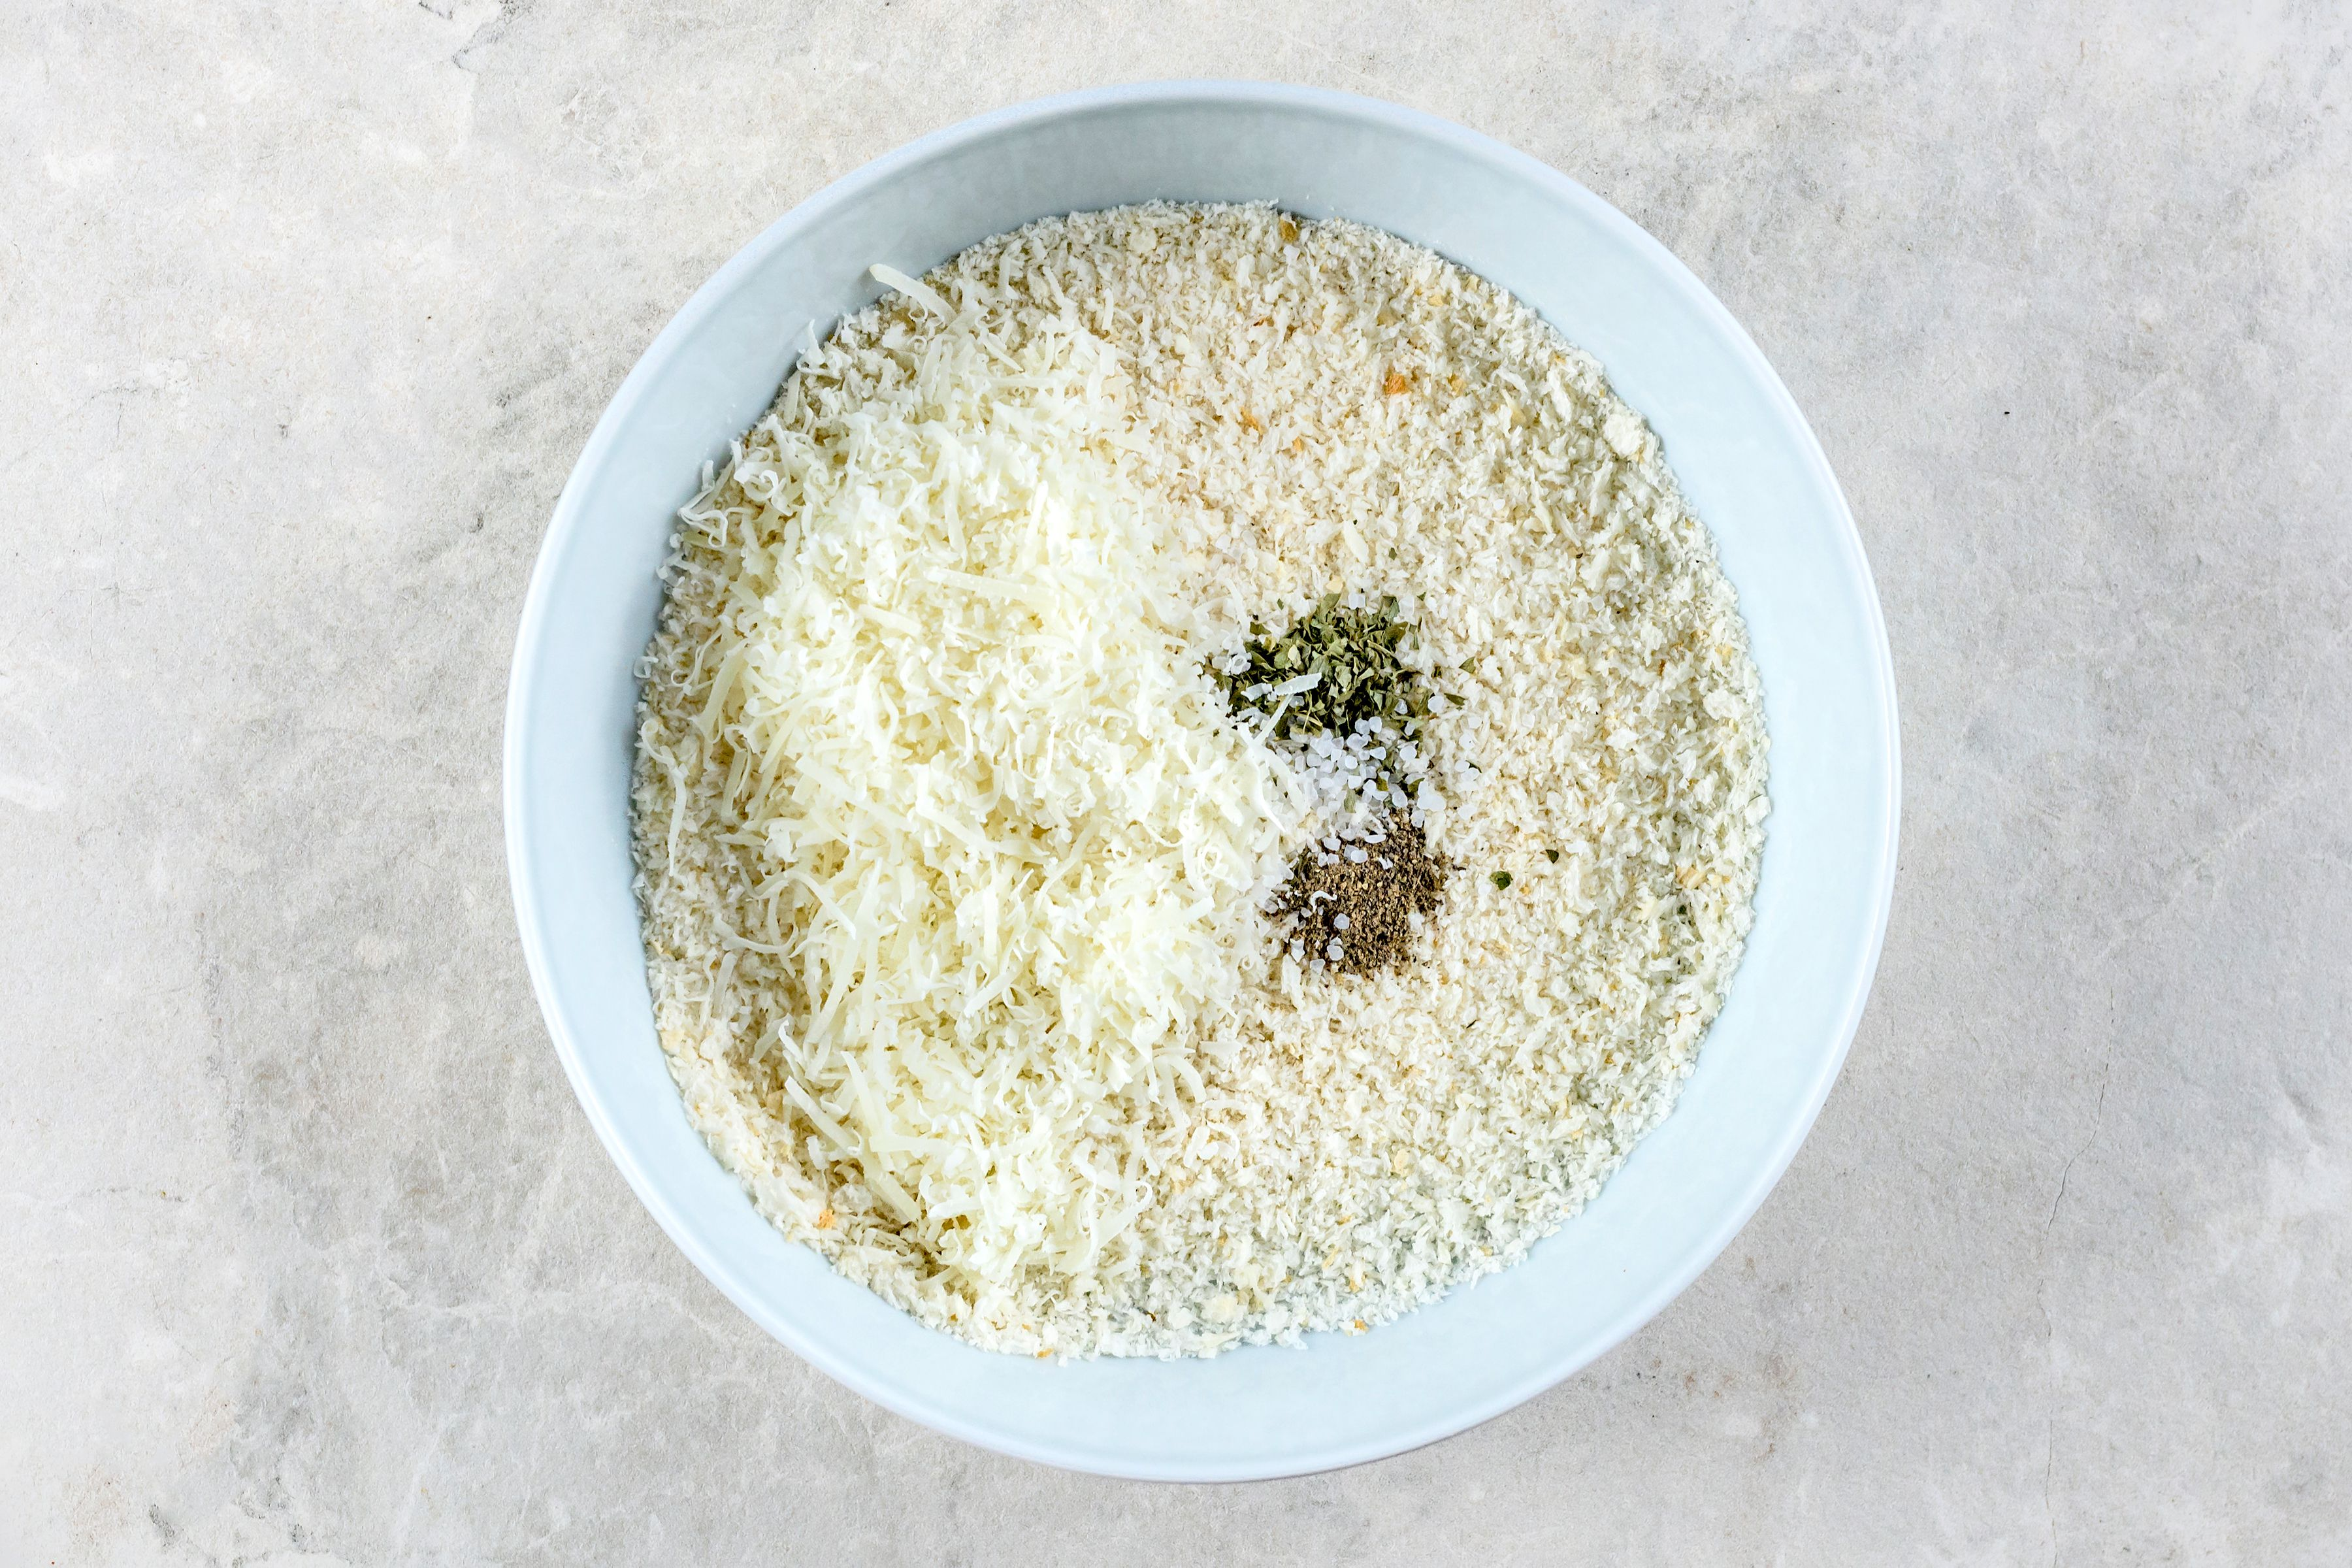 Adding Parmesan cheese, salt, basil, and pepper into breadcrumbs